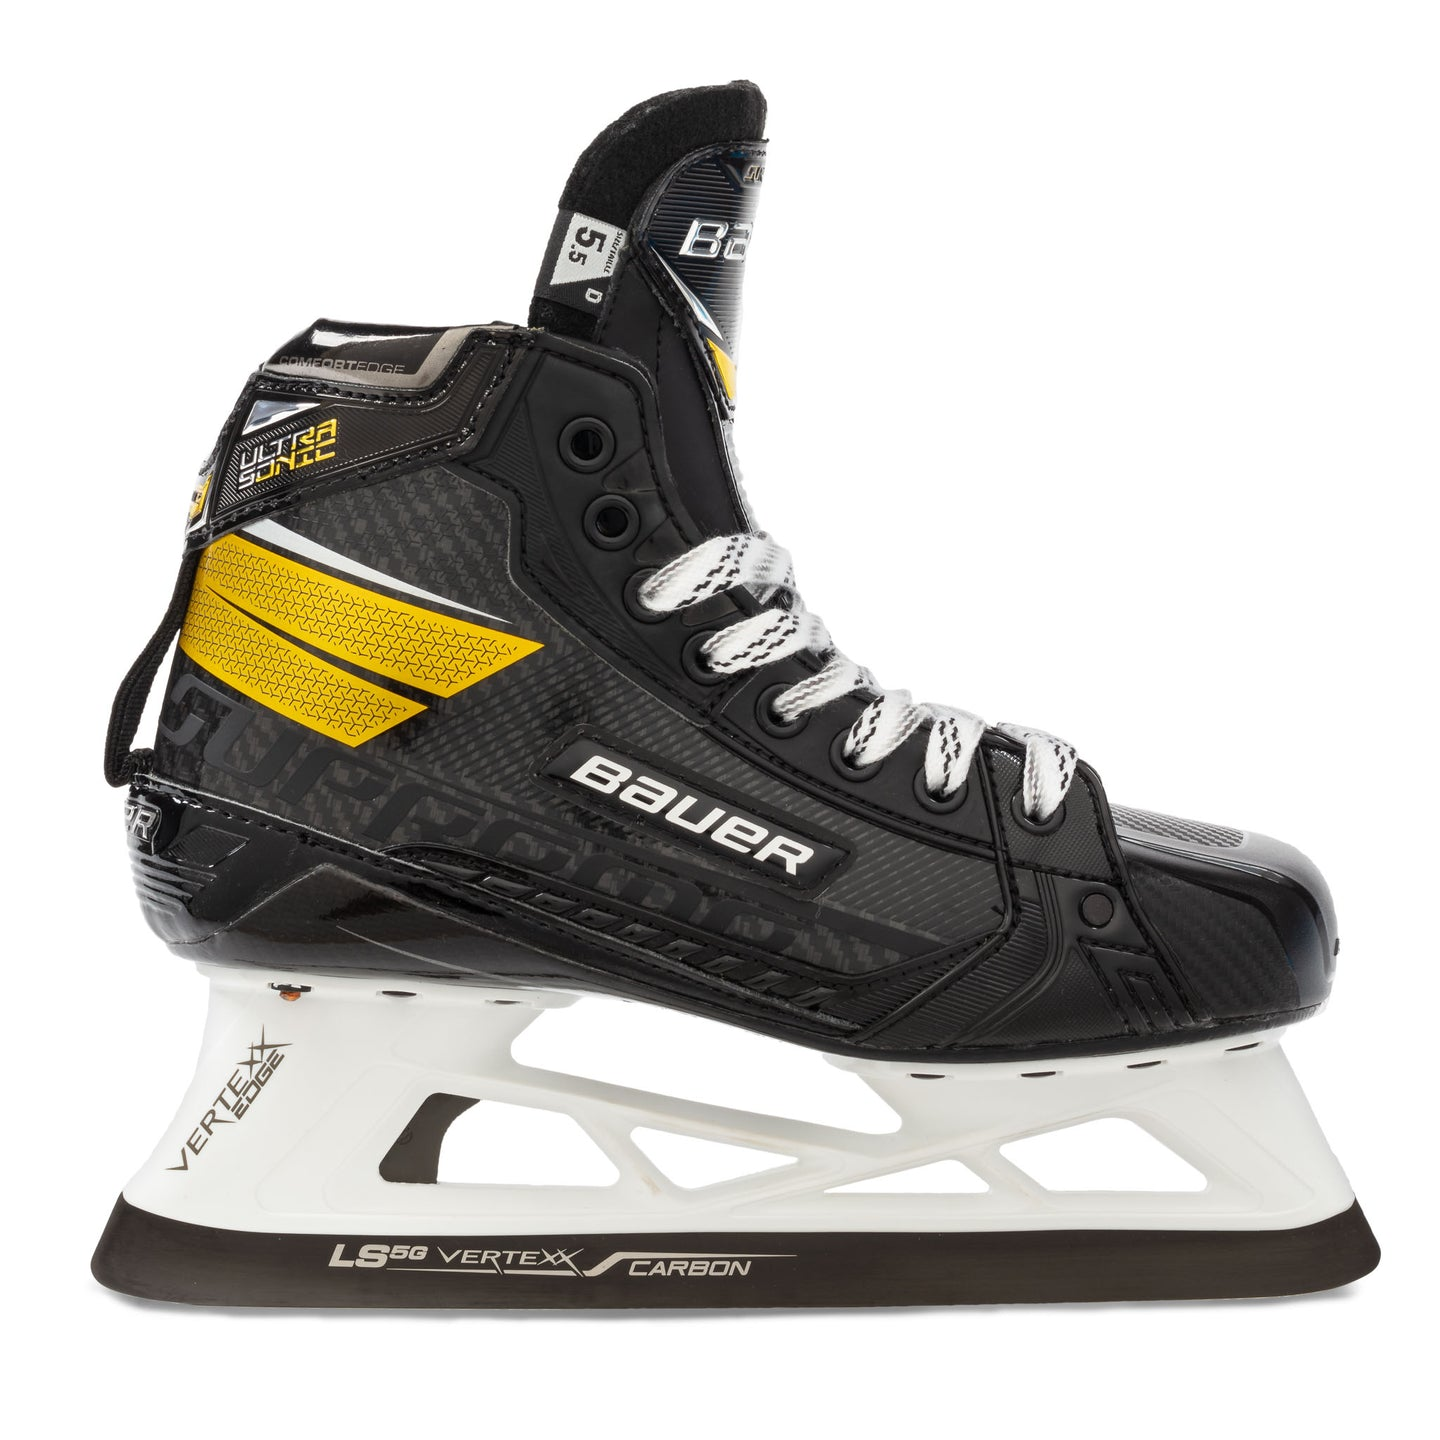 Bauer Supreme UltraSonic Intermediate Goalie Skates